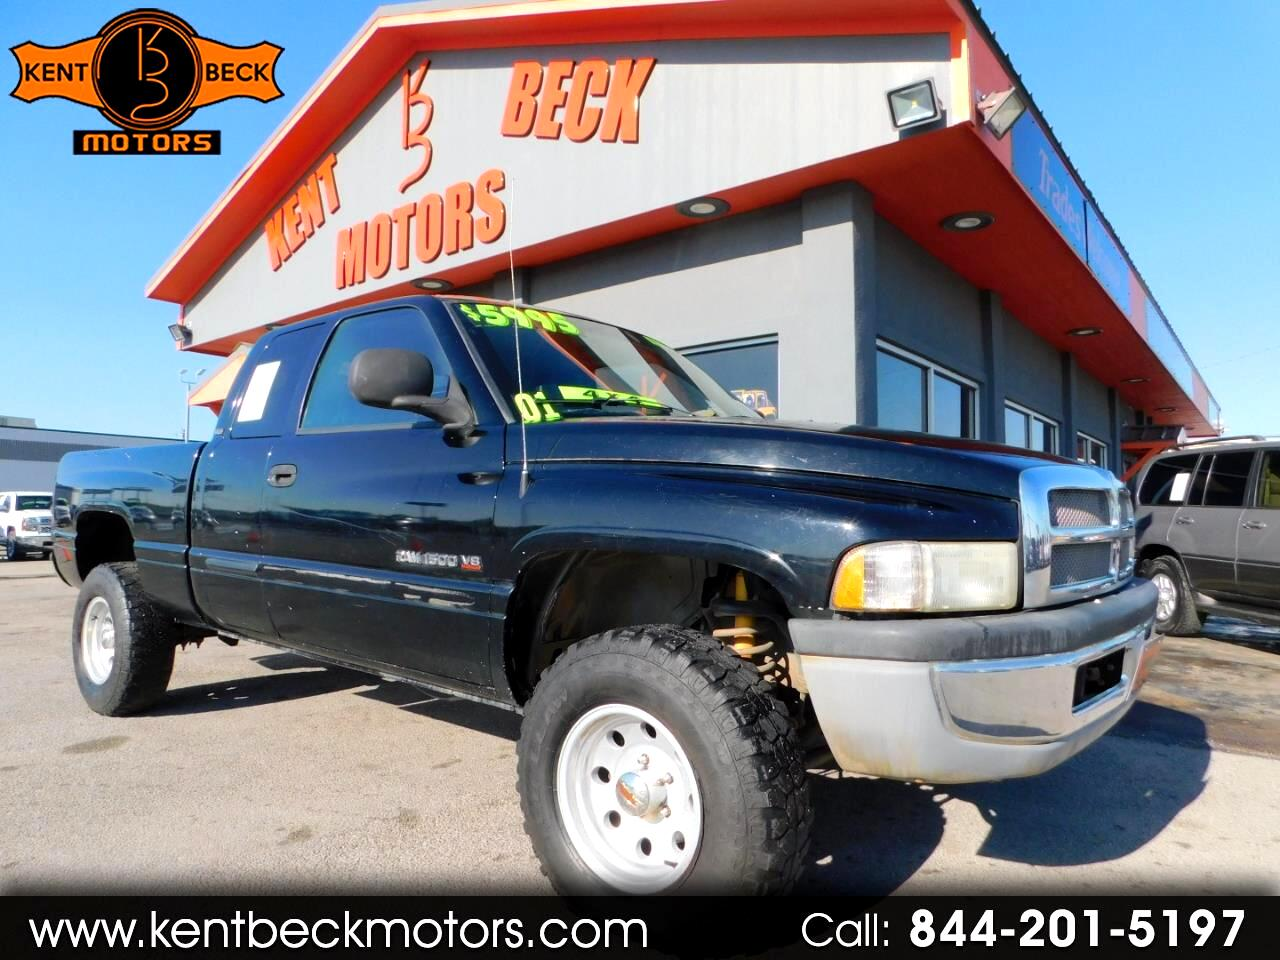 2001 Dodge Ram 1500 Quad Cab Short Bed 4WD